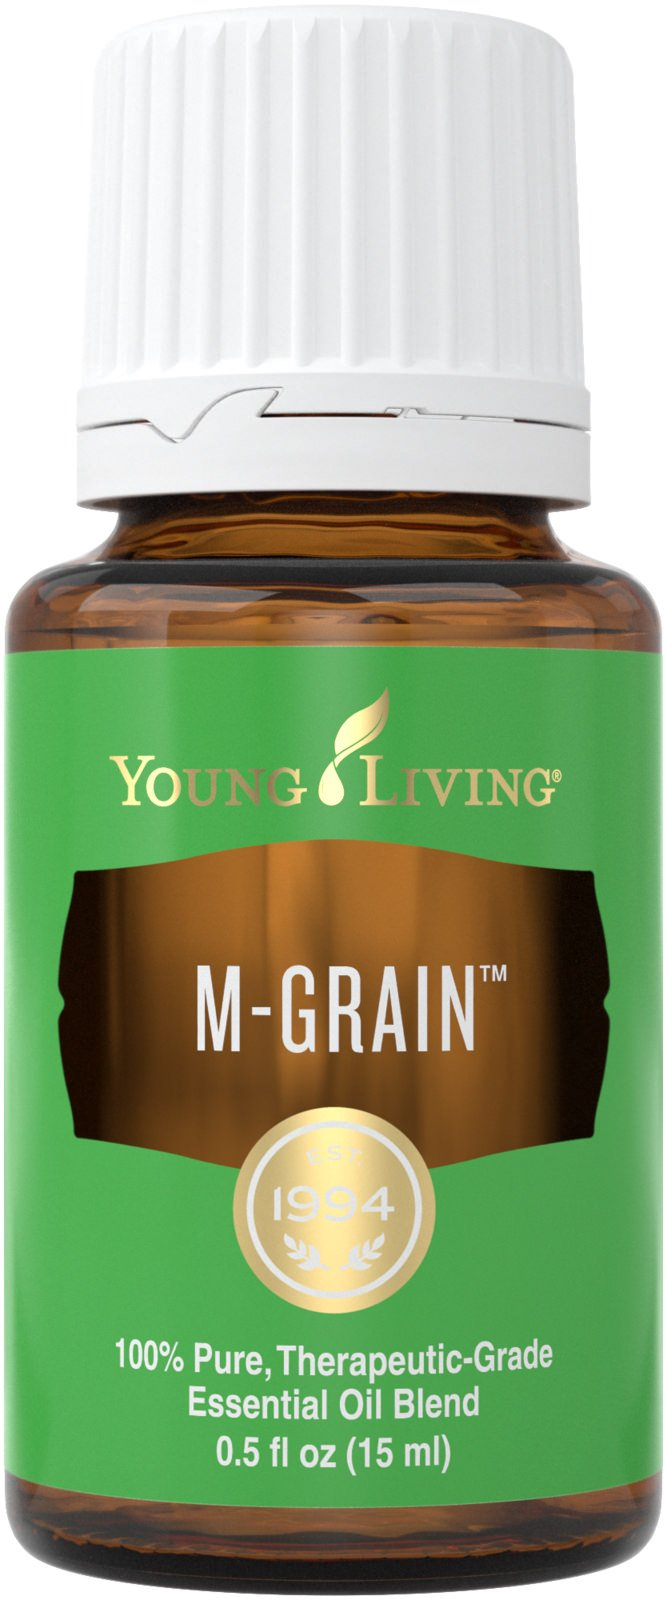 M-Grain  Essential Oil 15 ml by Young Living Essential Oils